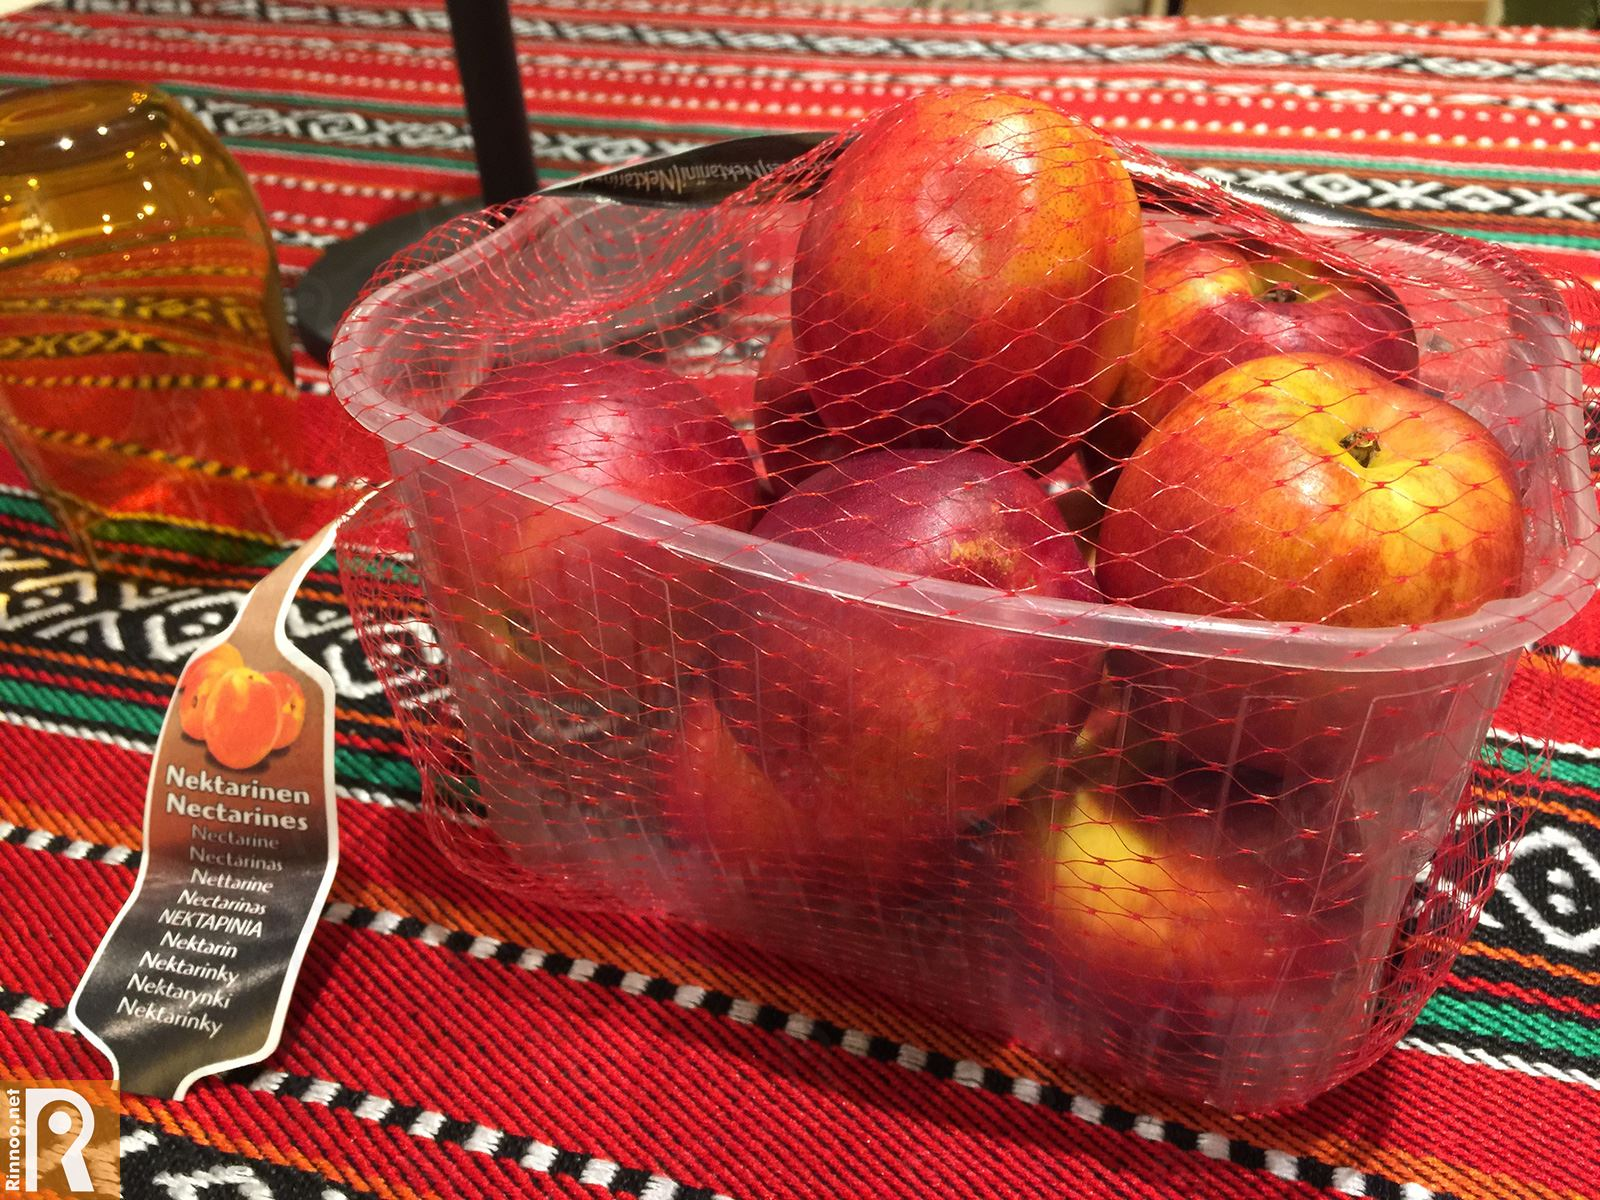 PEACH GARDEN Promotes Fresh Peaches in Kuwait for the 2nd